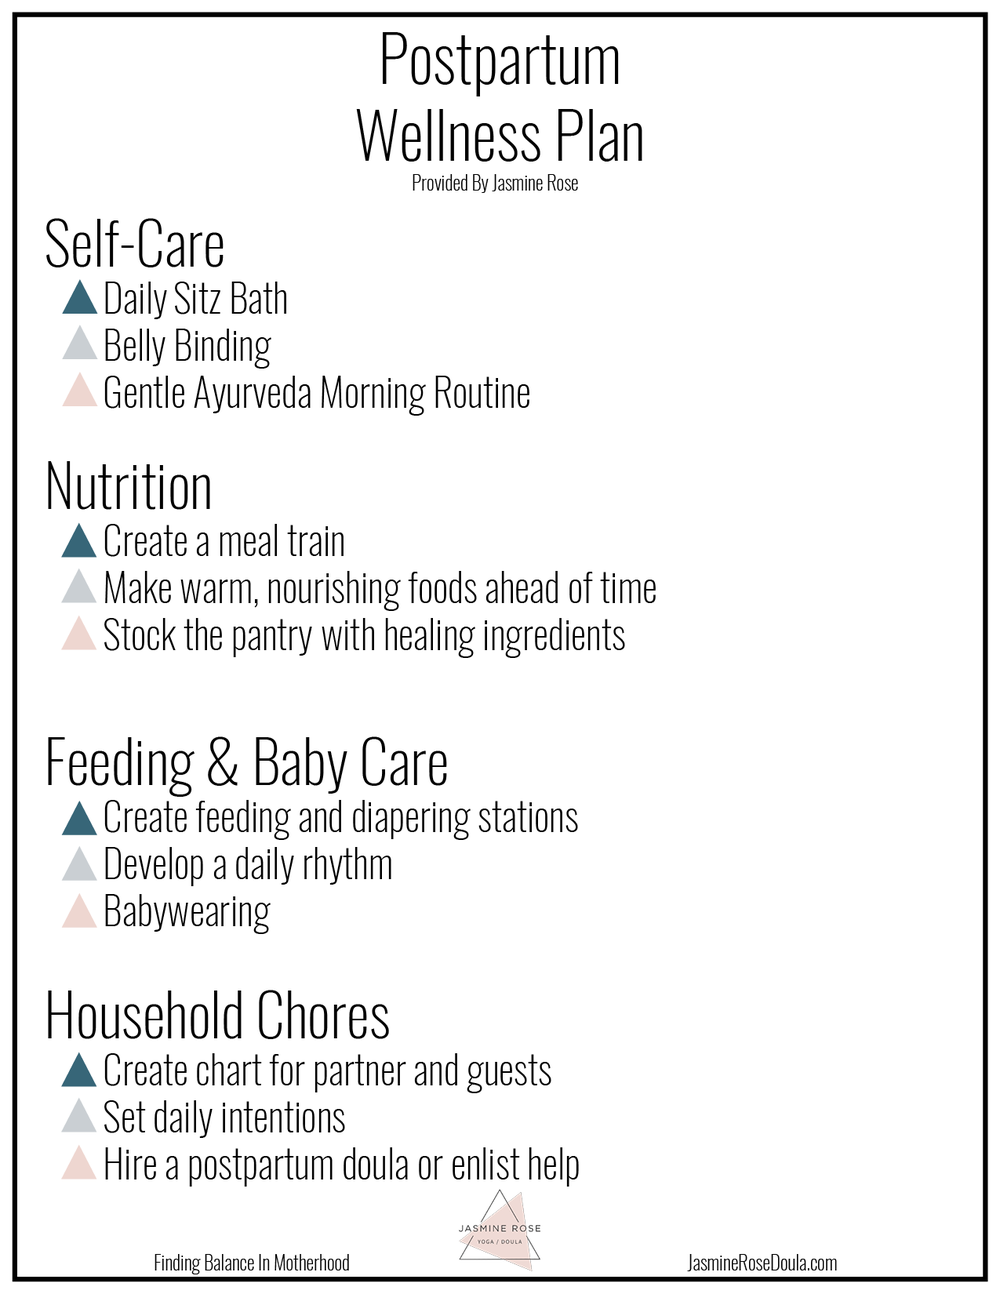 Postpartum Wellness Plan